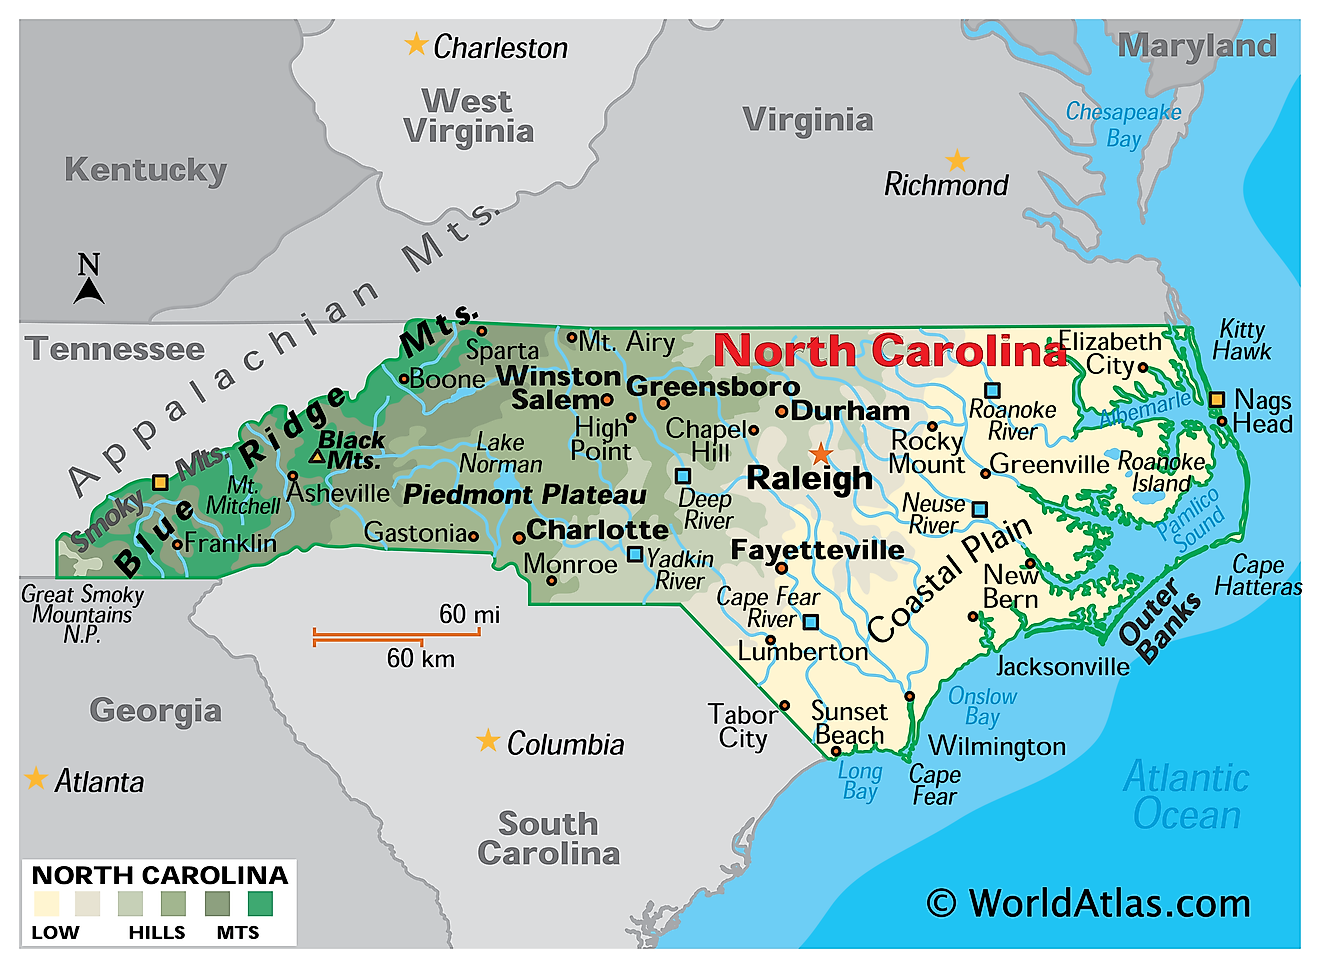 Physical Map of North Carolina. It shows the physical features of North Carolina including its mountain ranges, major rivers and lakes.